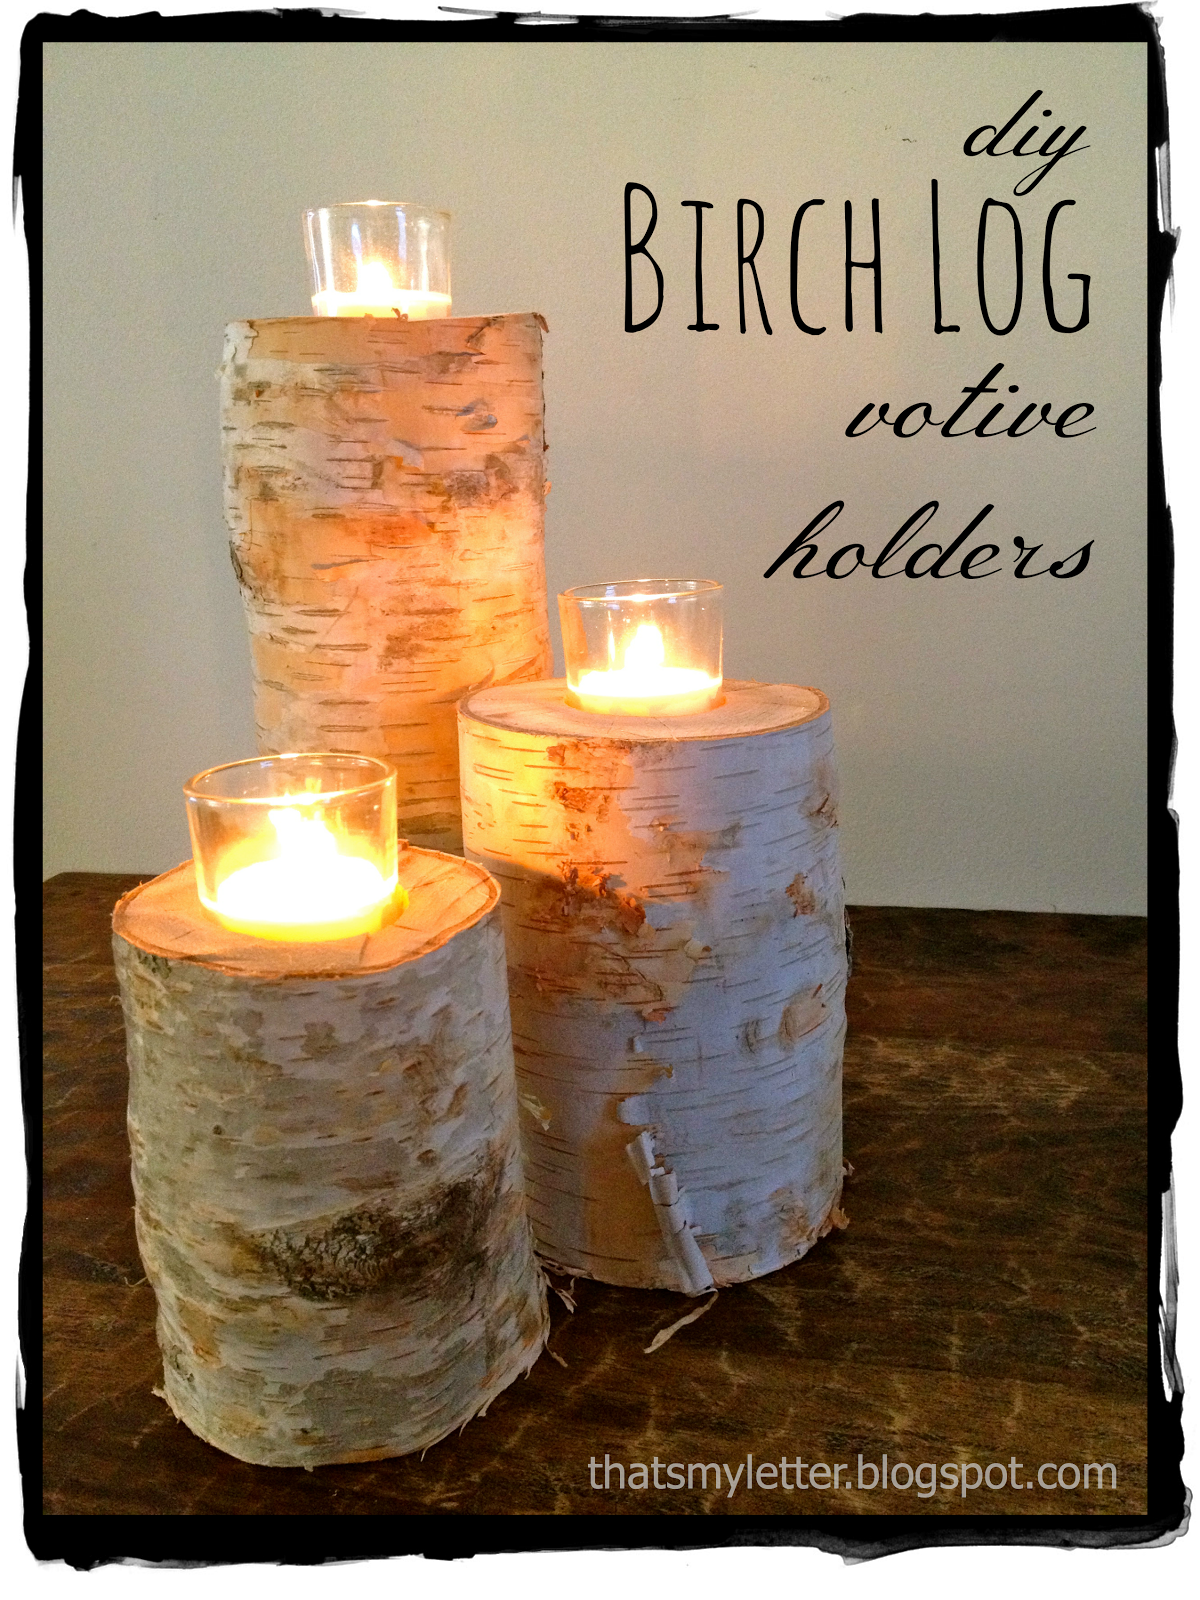 Log Crafts Thats My Letter B Is For Birch Log Votives Birch Logs With Glass